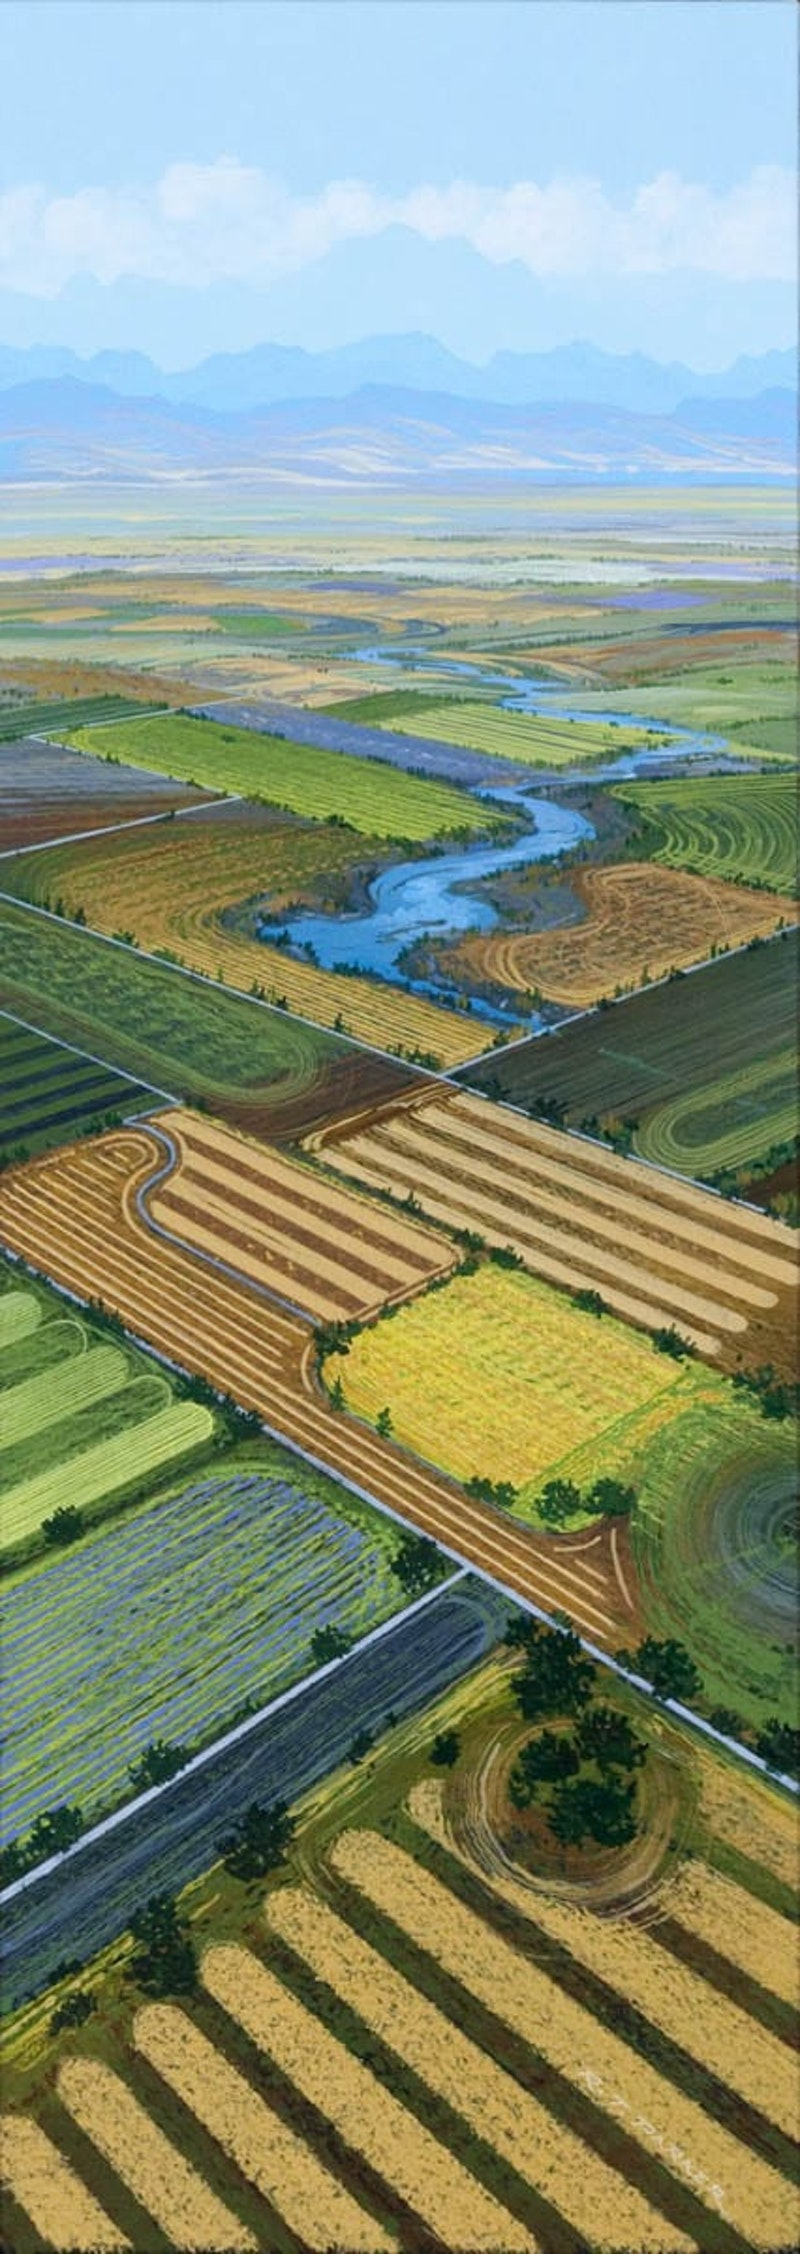 The Cultivated Landscape Image 1